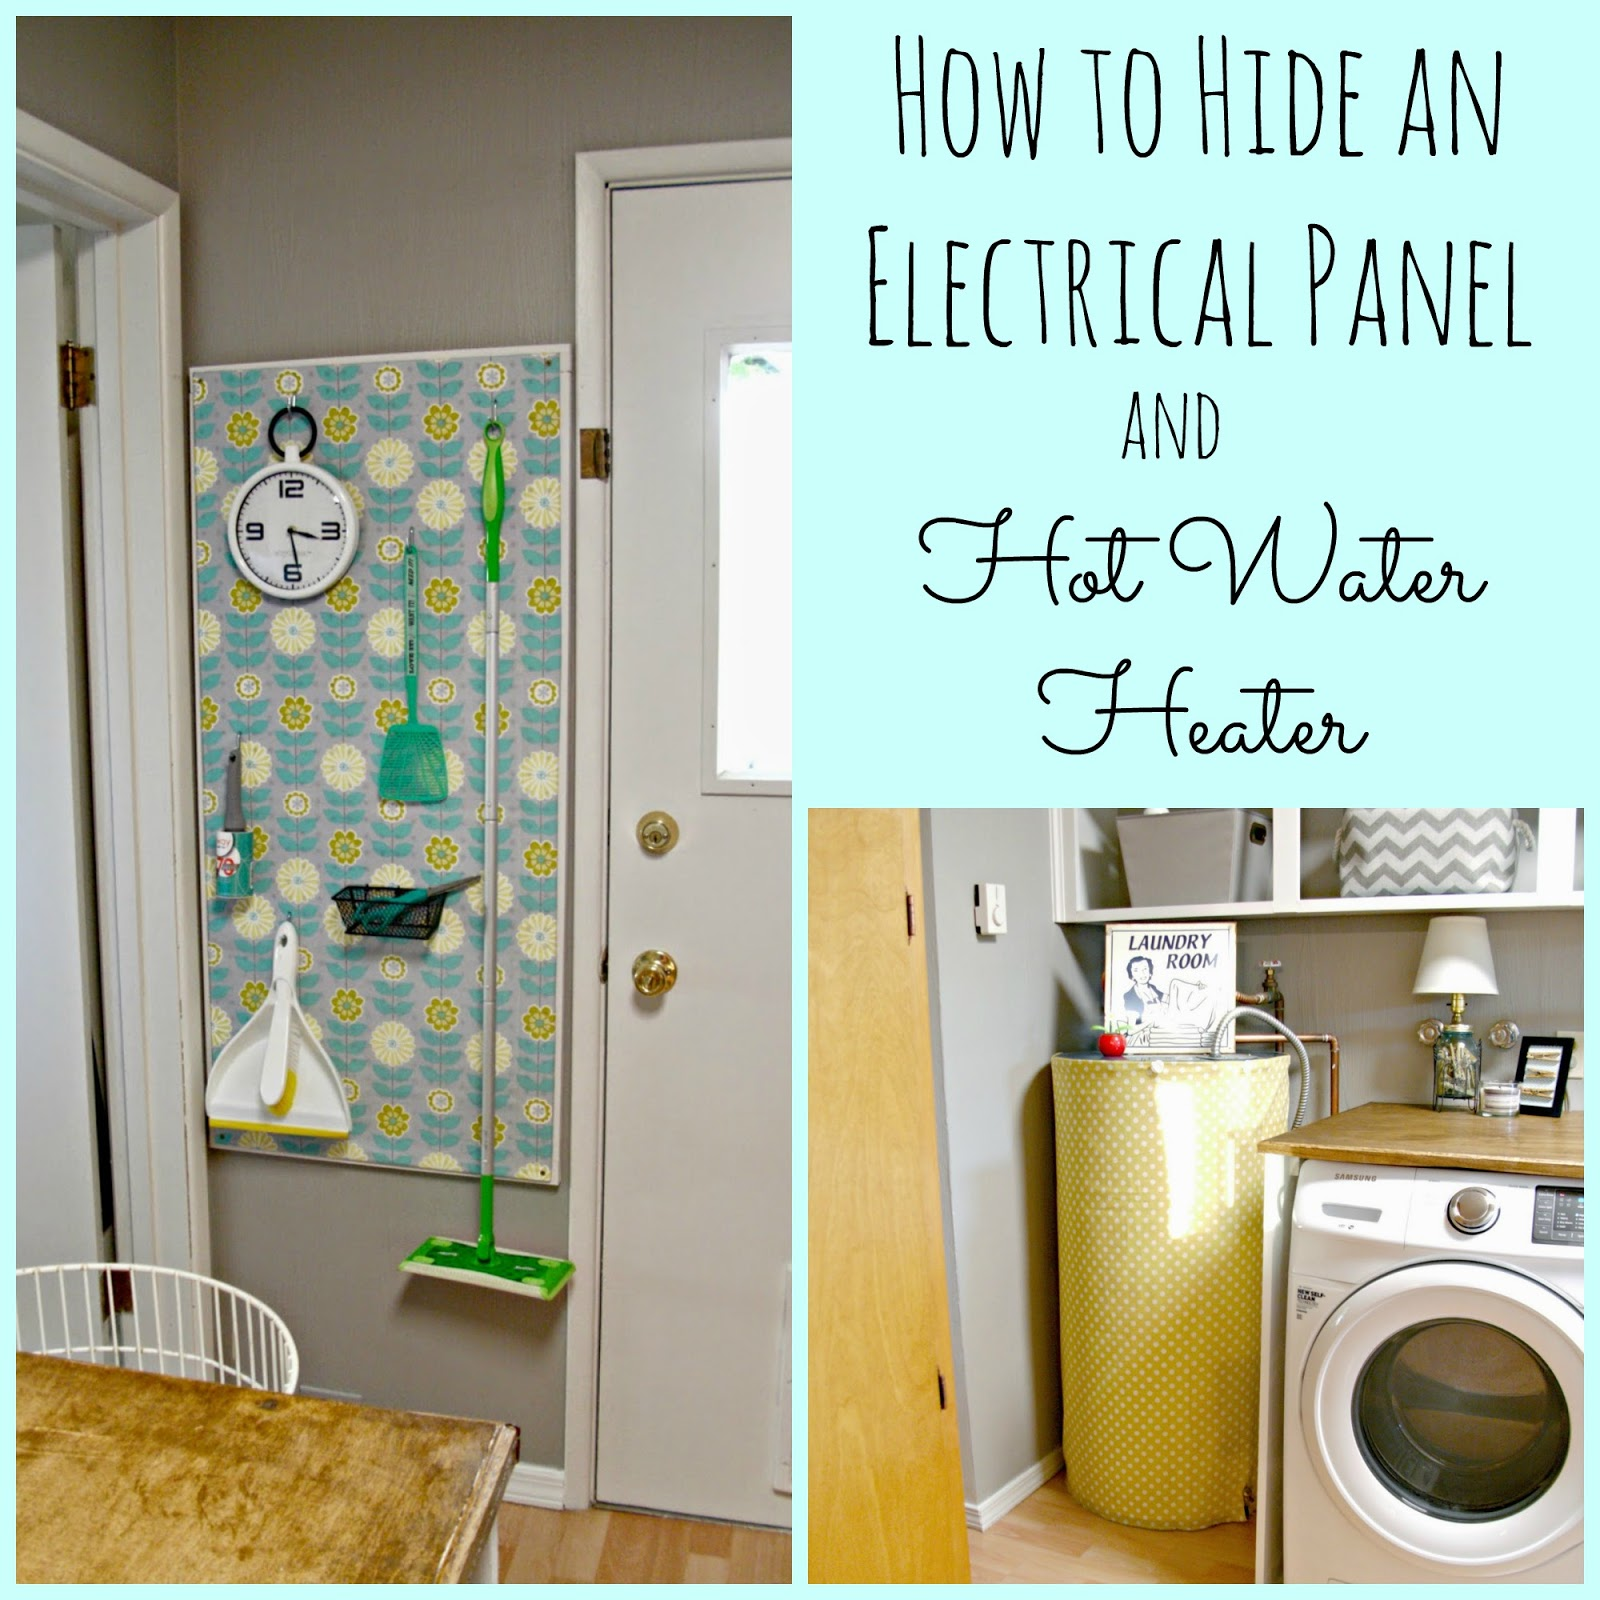 Electrical Home Design Ideas: Hiding The Electrical Panel & Hot